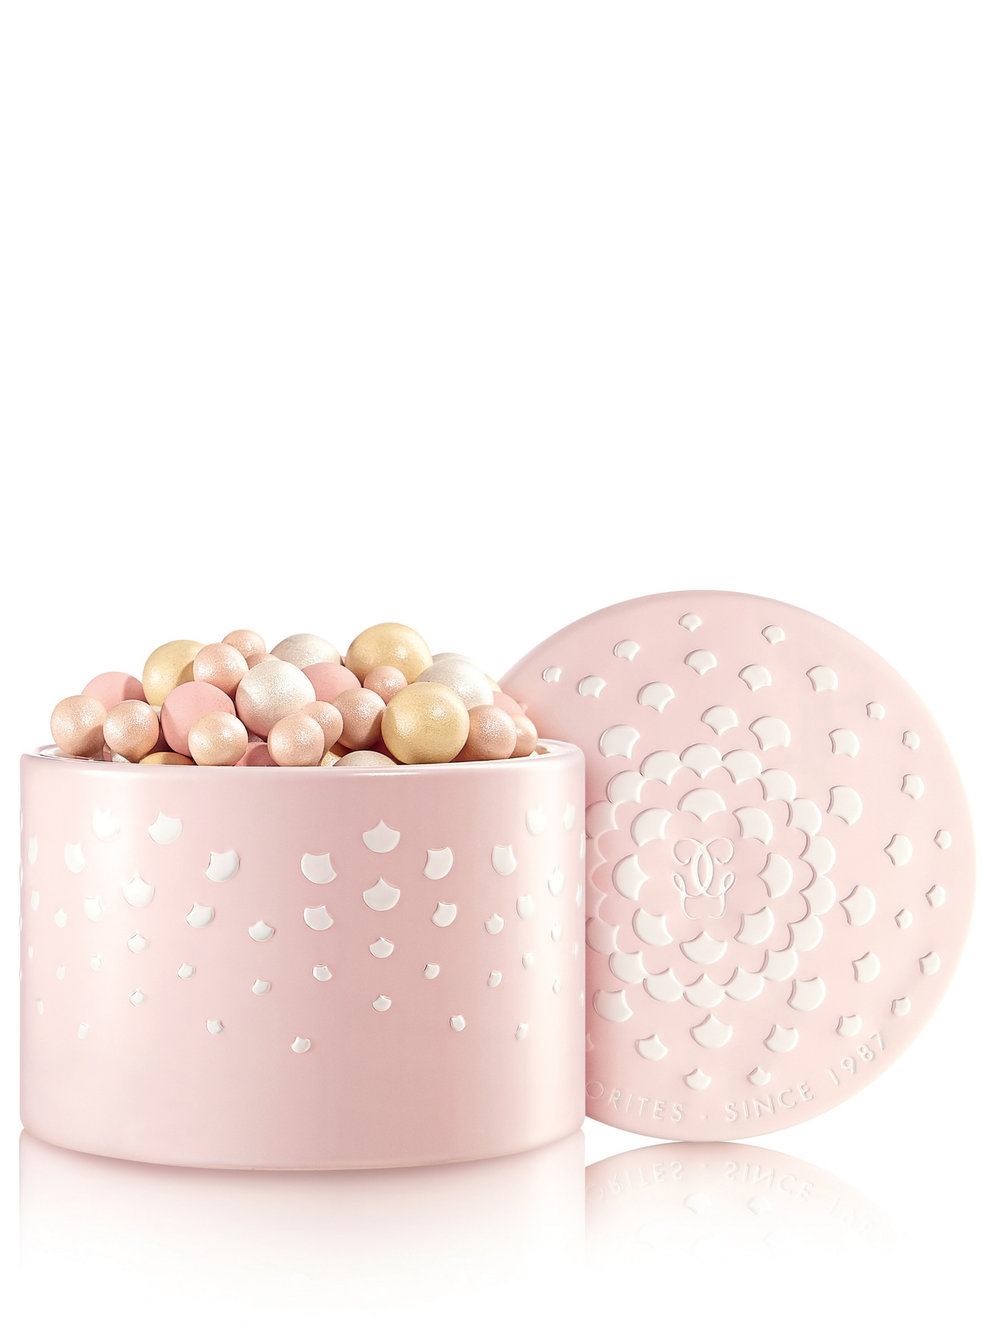 Météorites Birthday Candle Pearl - In occasion of this special anniversary GUERLAIN designed a exclusive powder box inspired by the beauty of pearls and shining like a birthday candle.